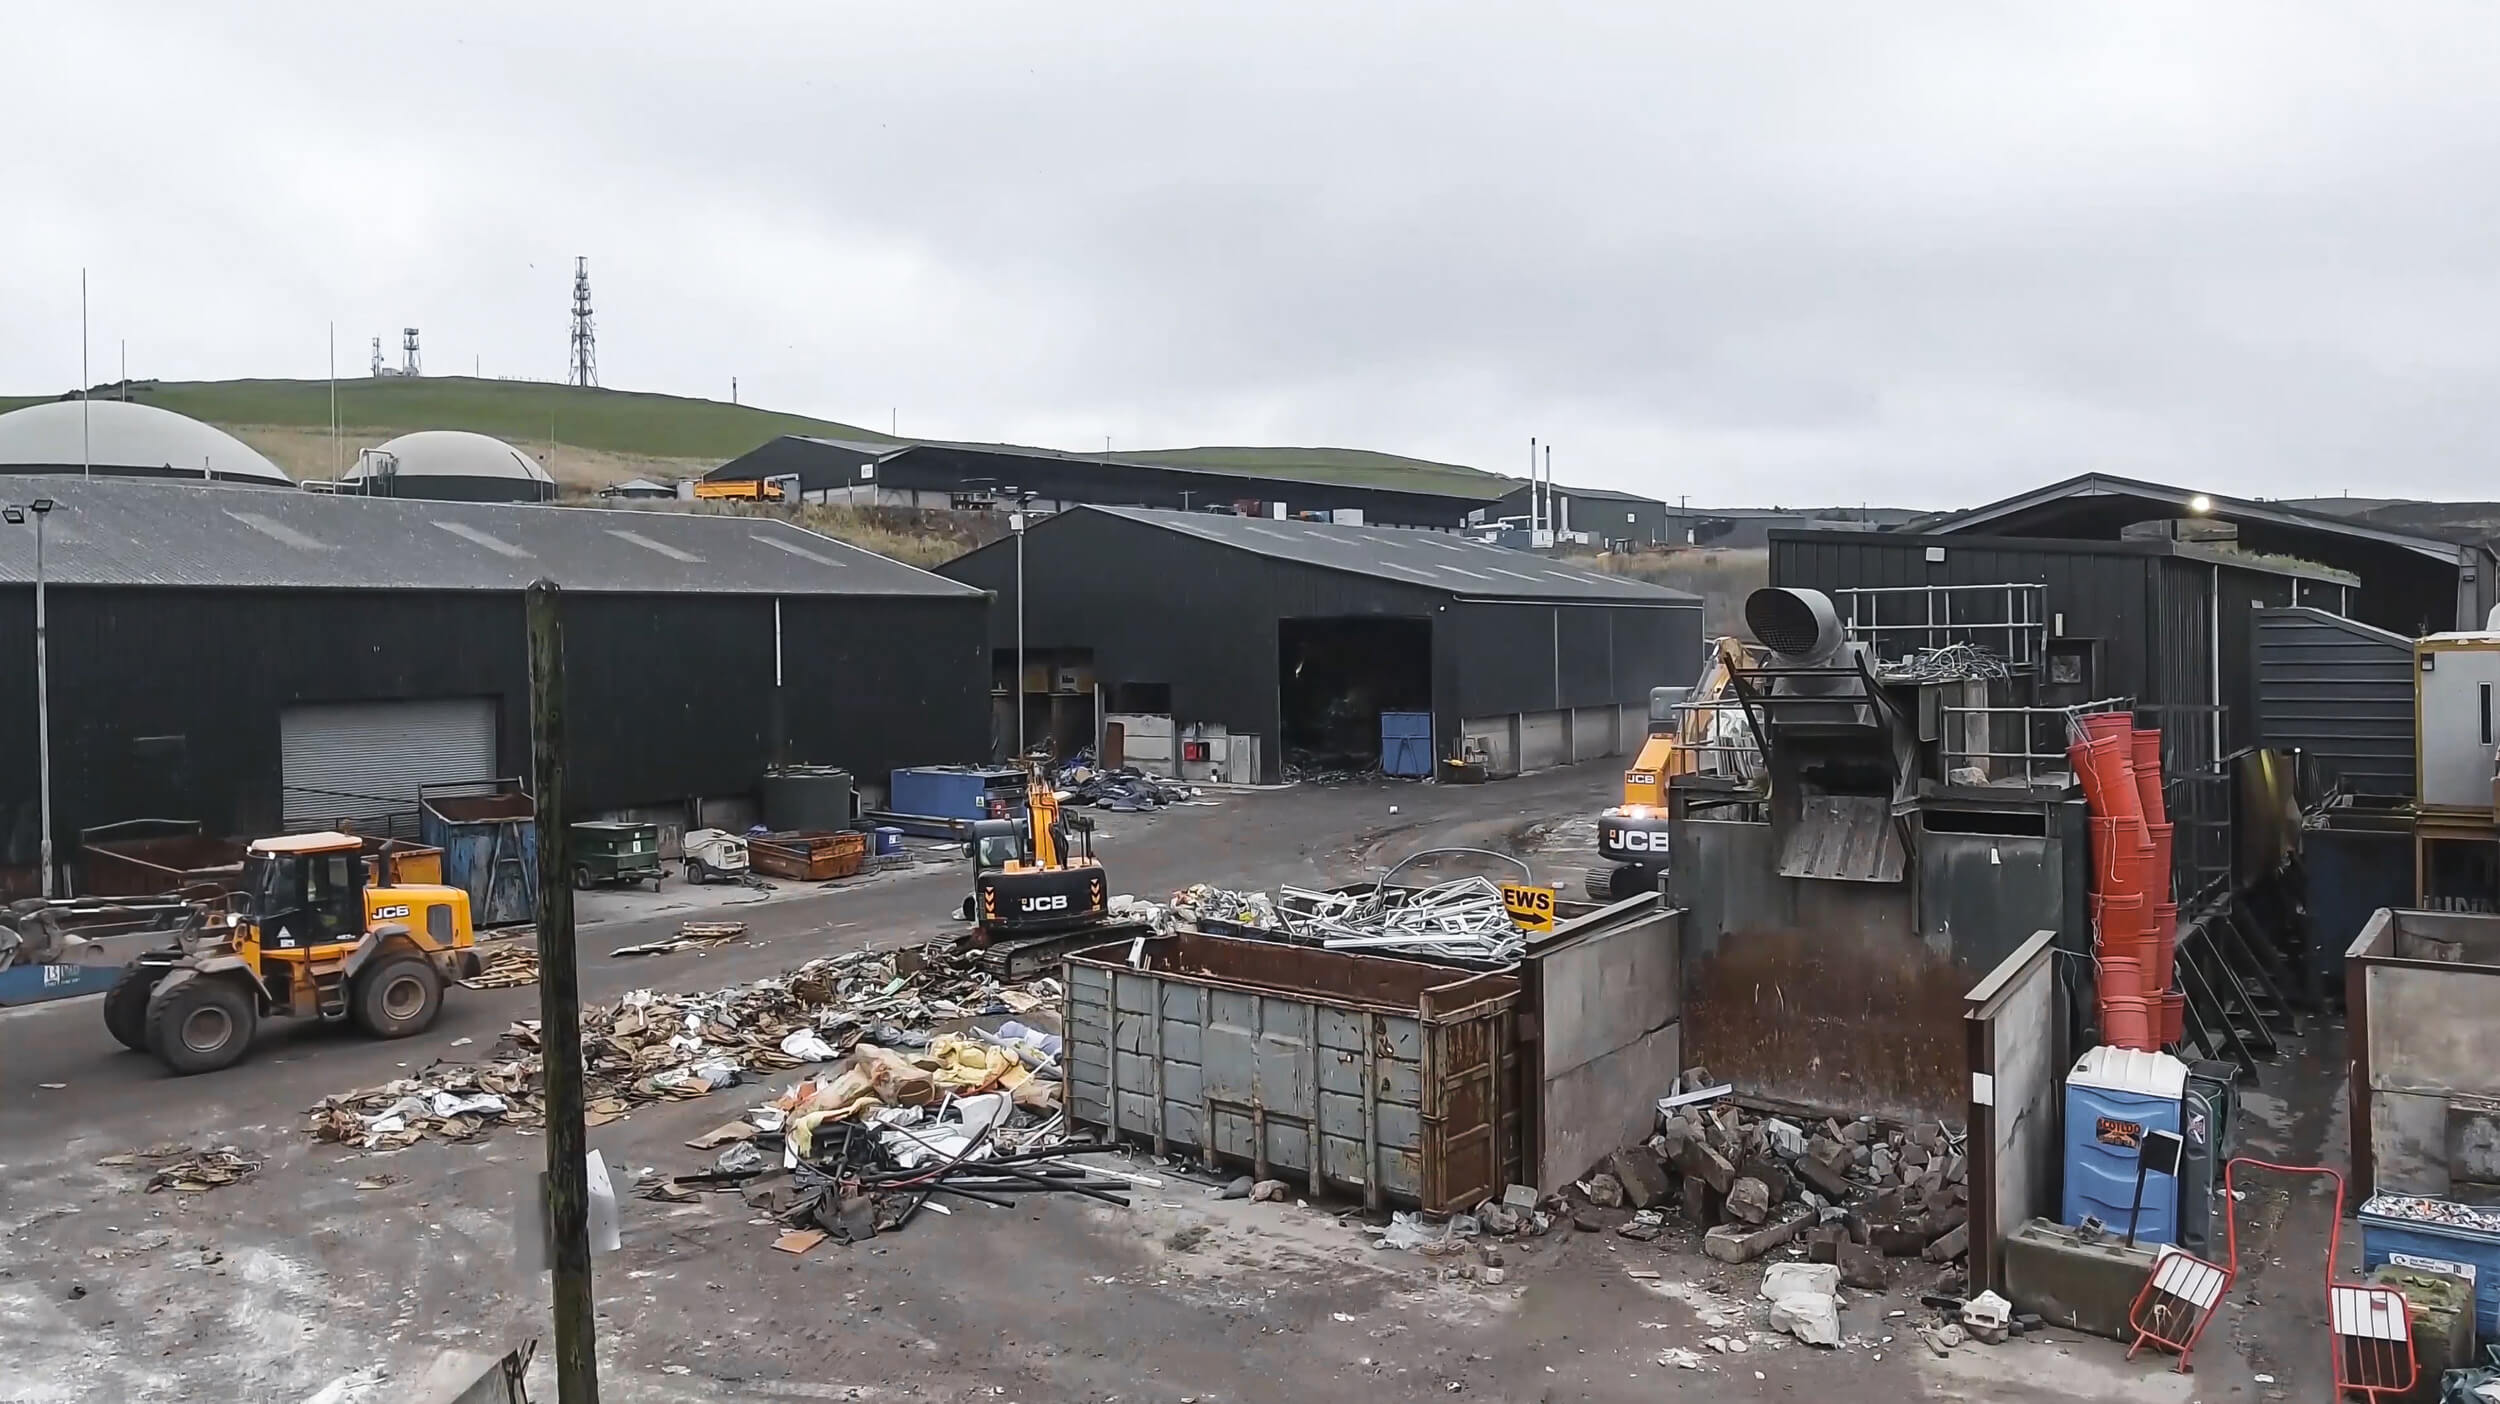 Binn Group's material recycling facility in Glenfarg, Scotland